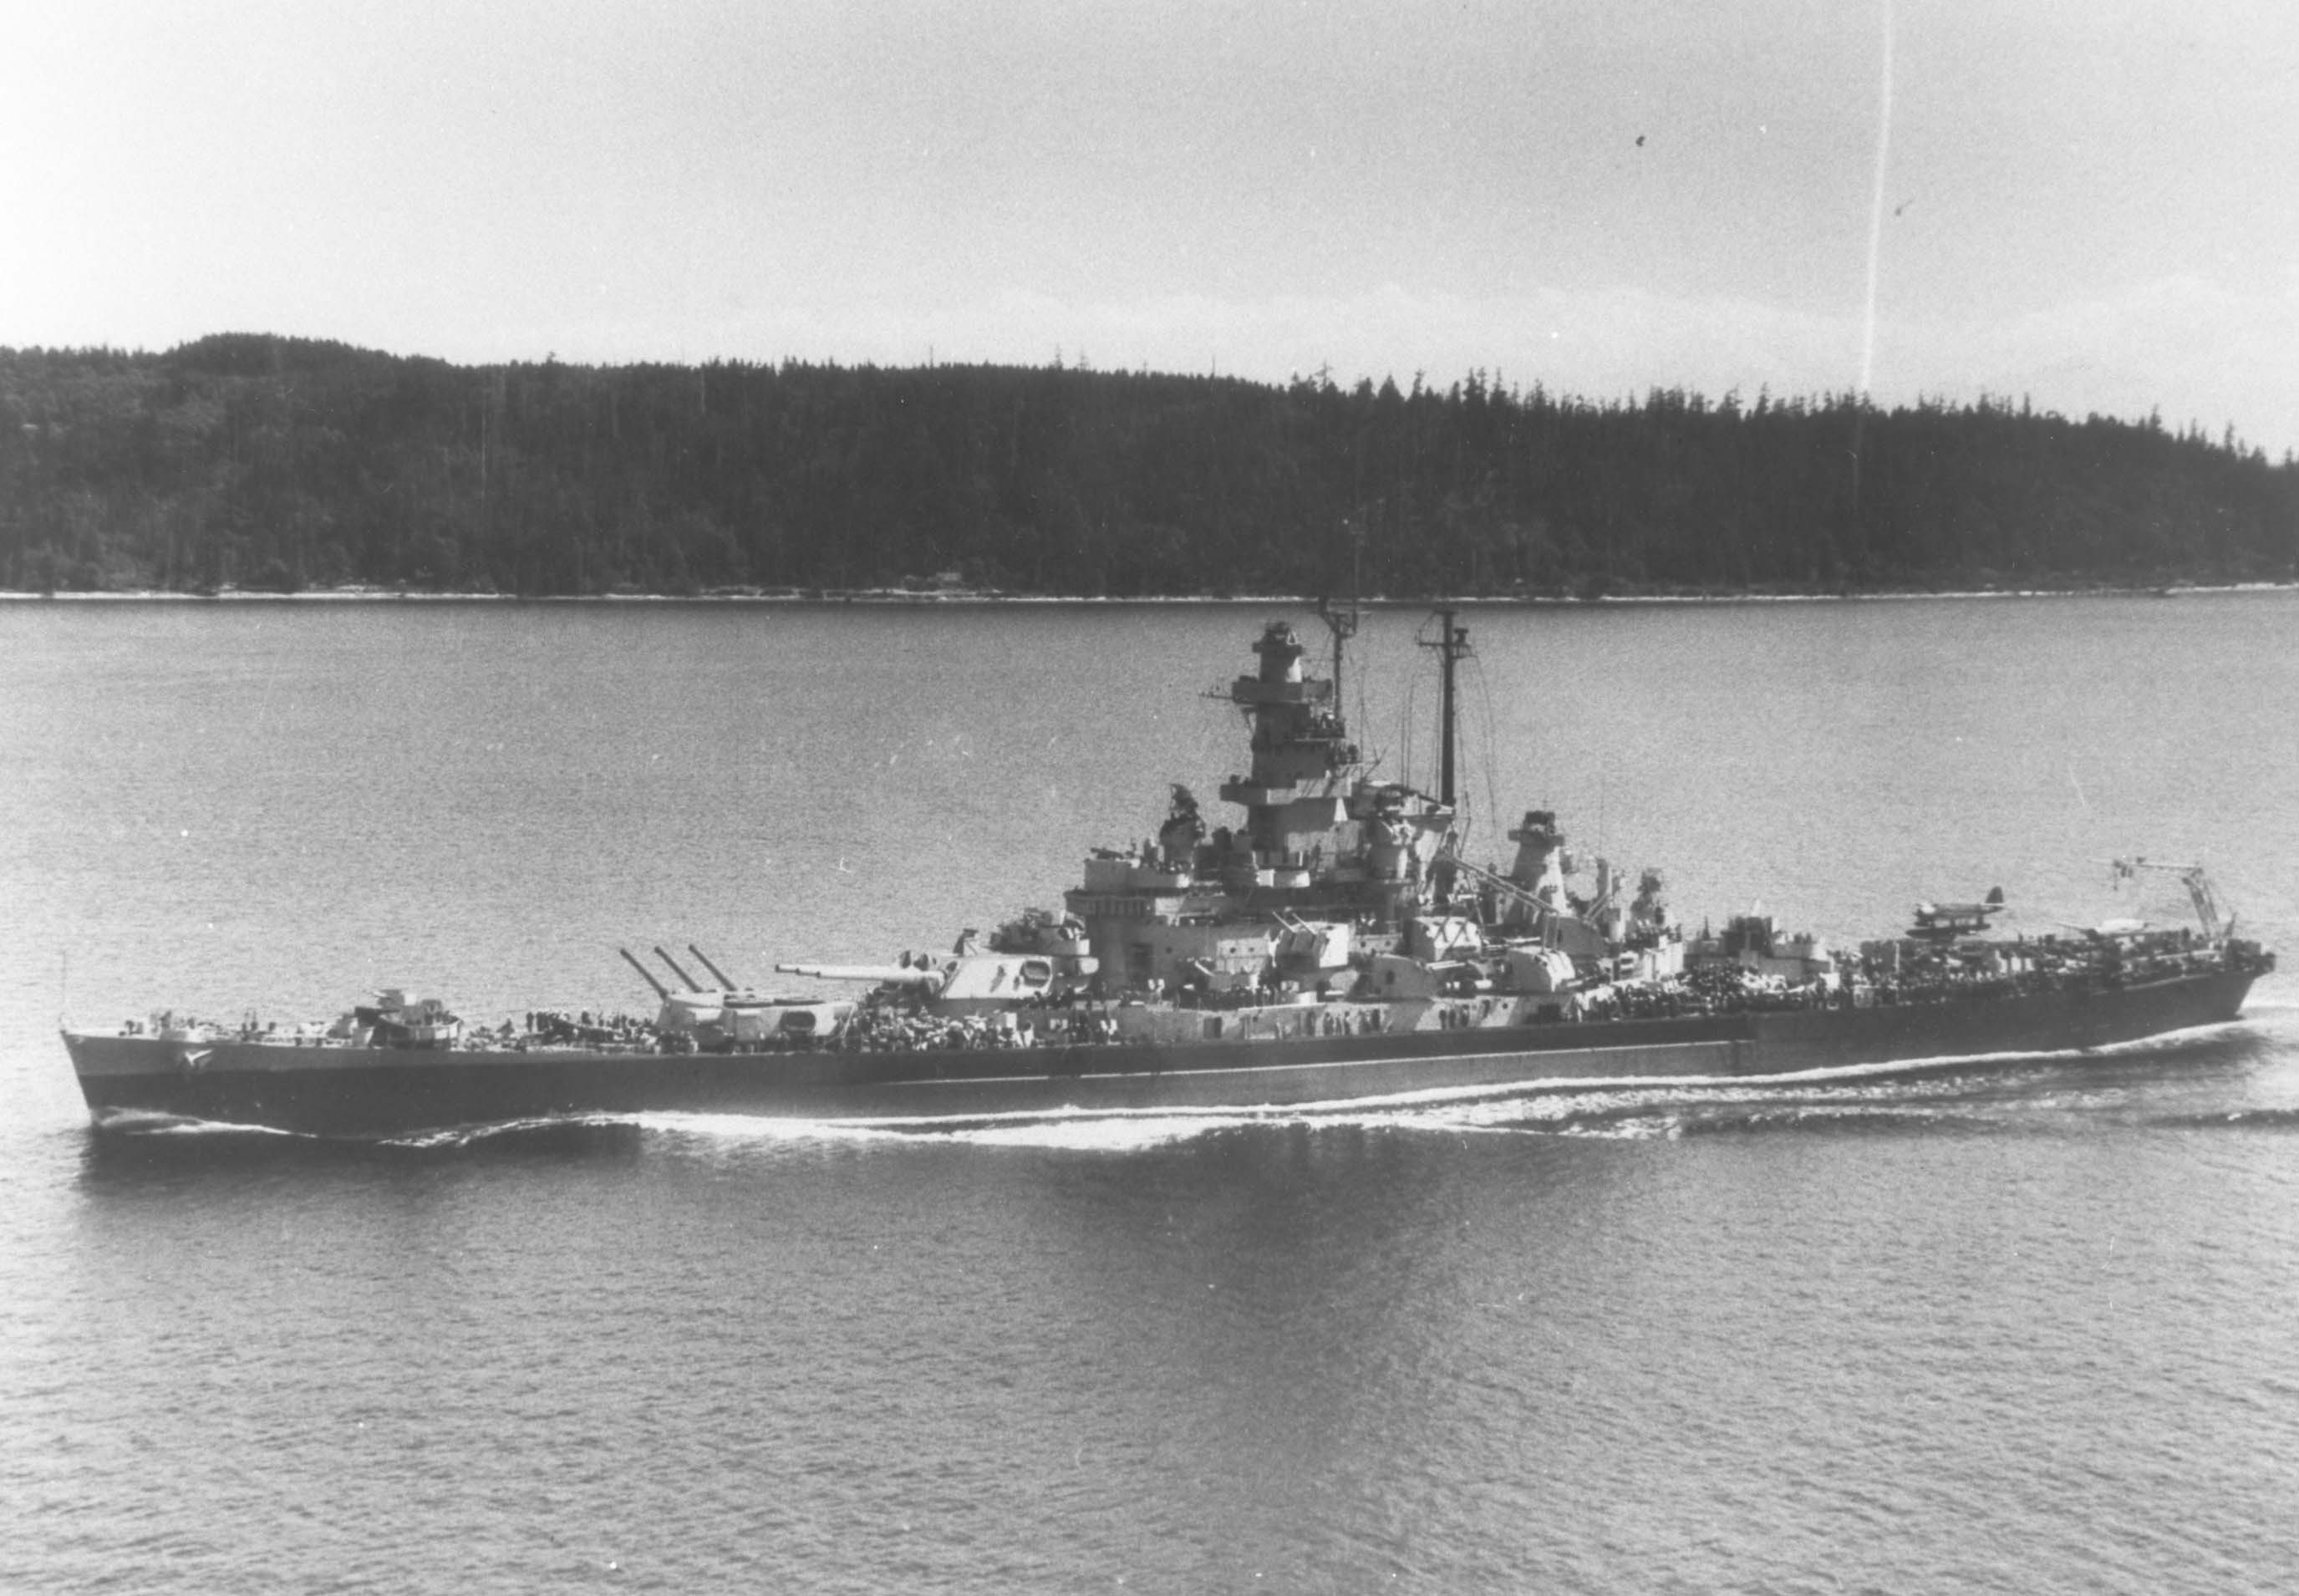 File:Uss massachusetts bb.jpg